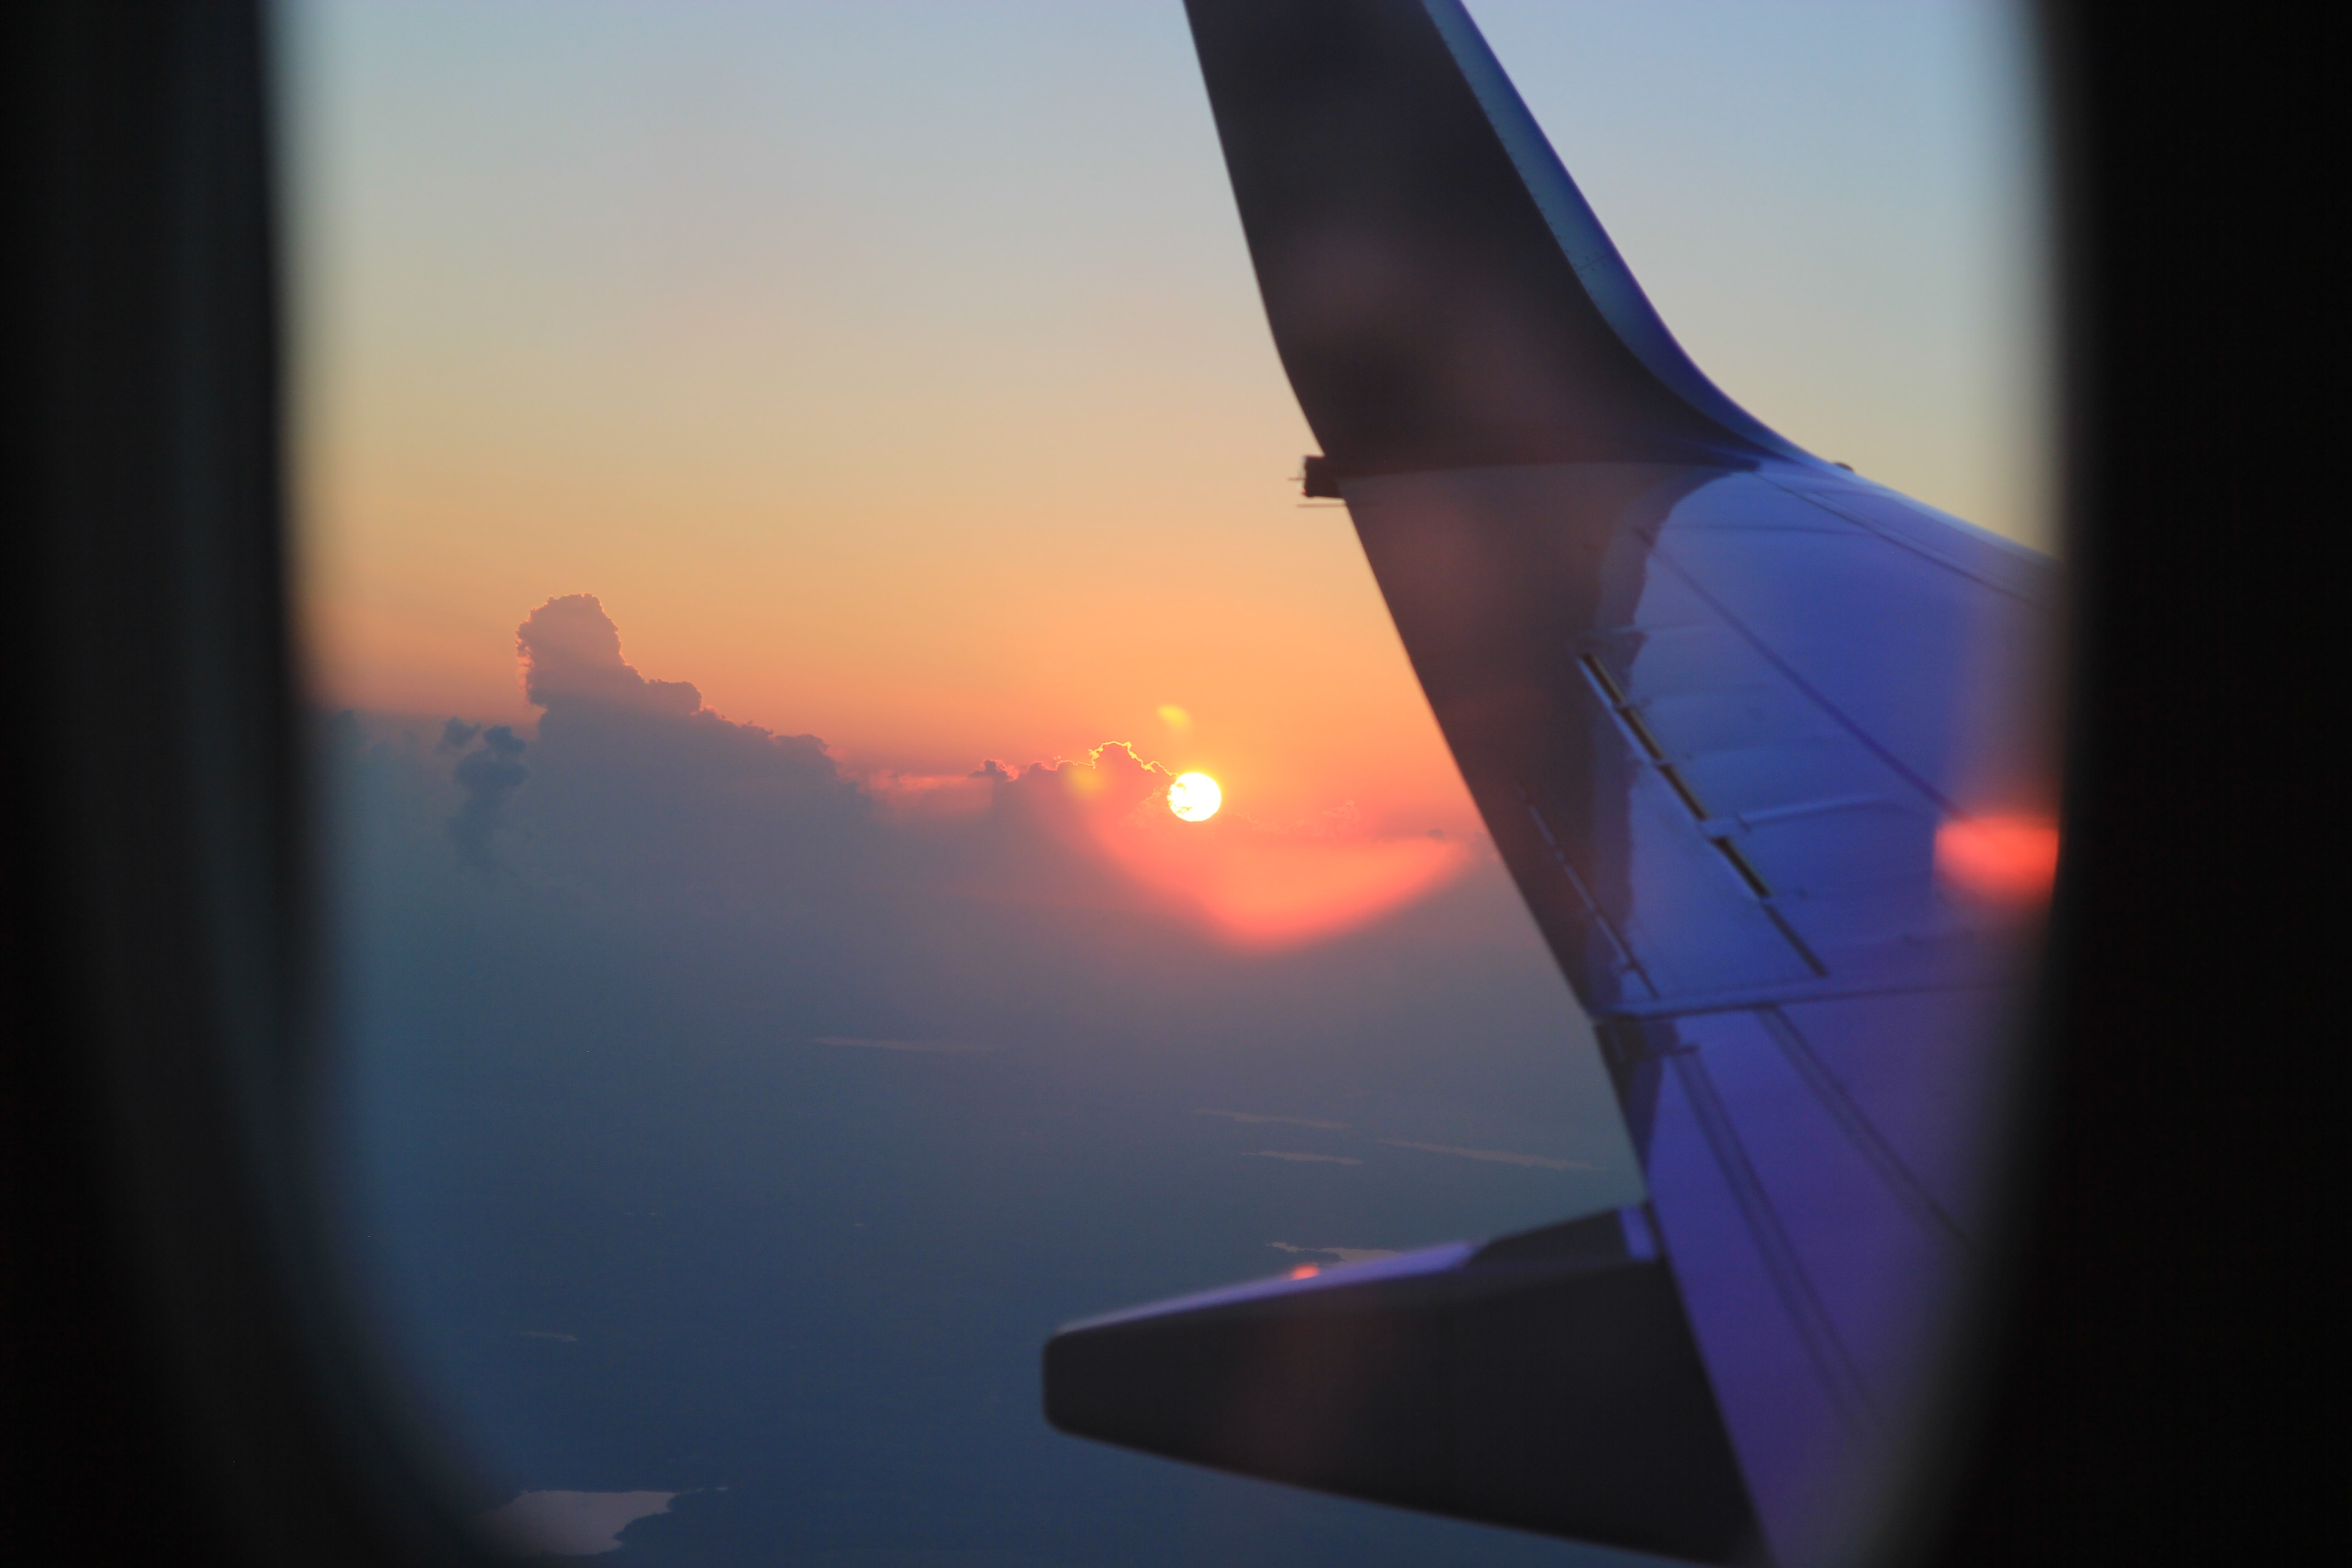 A passenger's view of the distance sunset from a plane window, with the plane's wing in the foreground